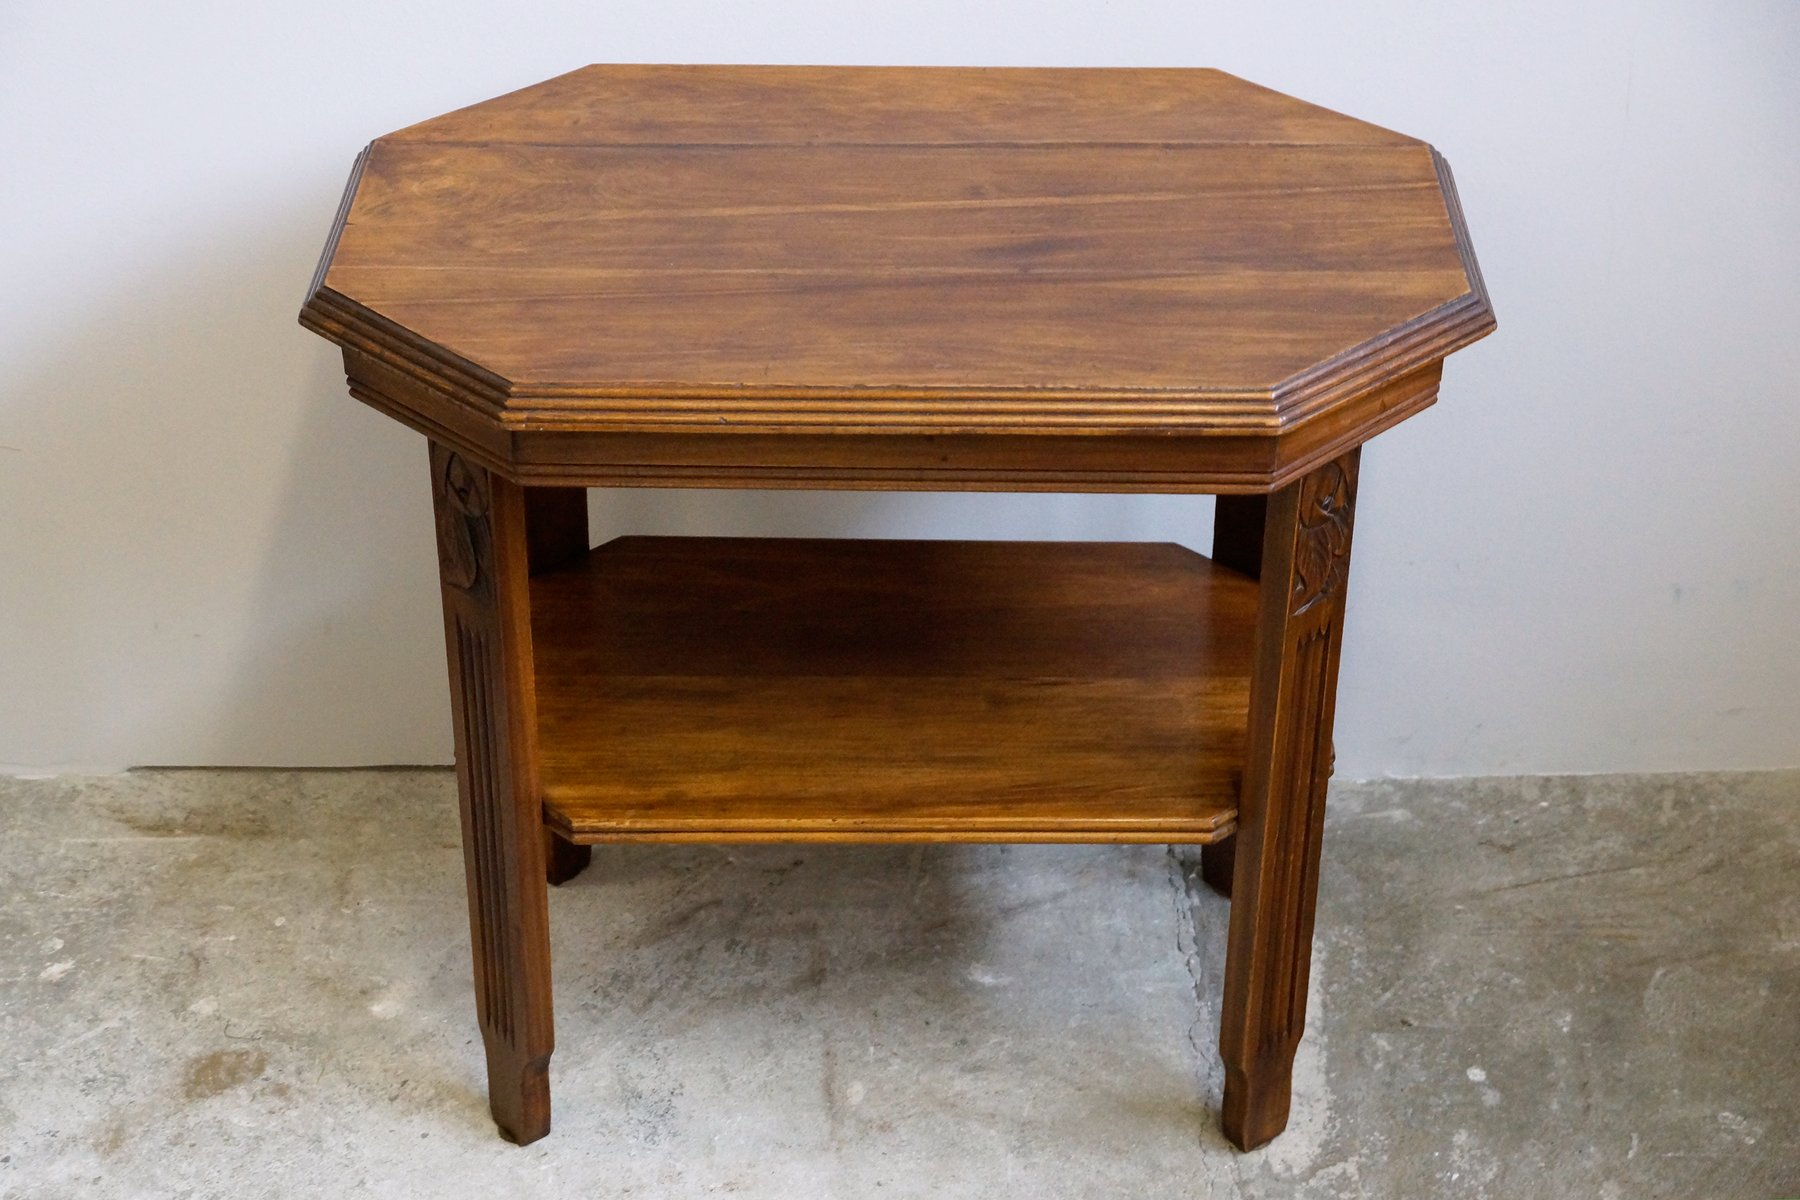 art deco jugendstil walnut side table 1920s for sale at. Black Bedroom Furniture Sets. Home Design Ideas